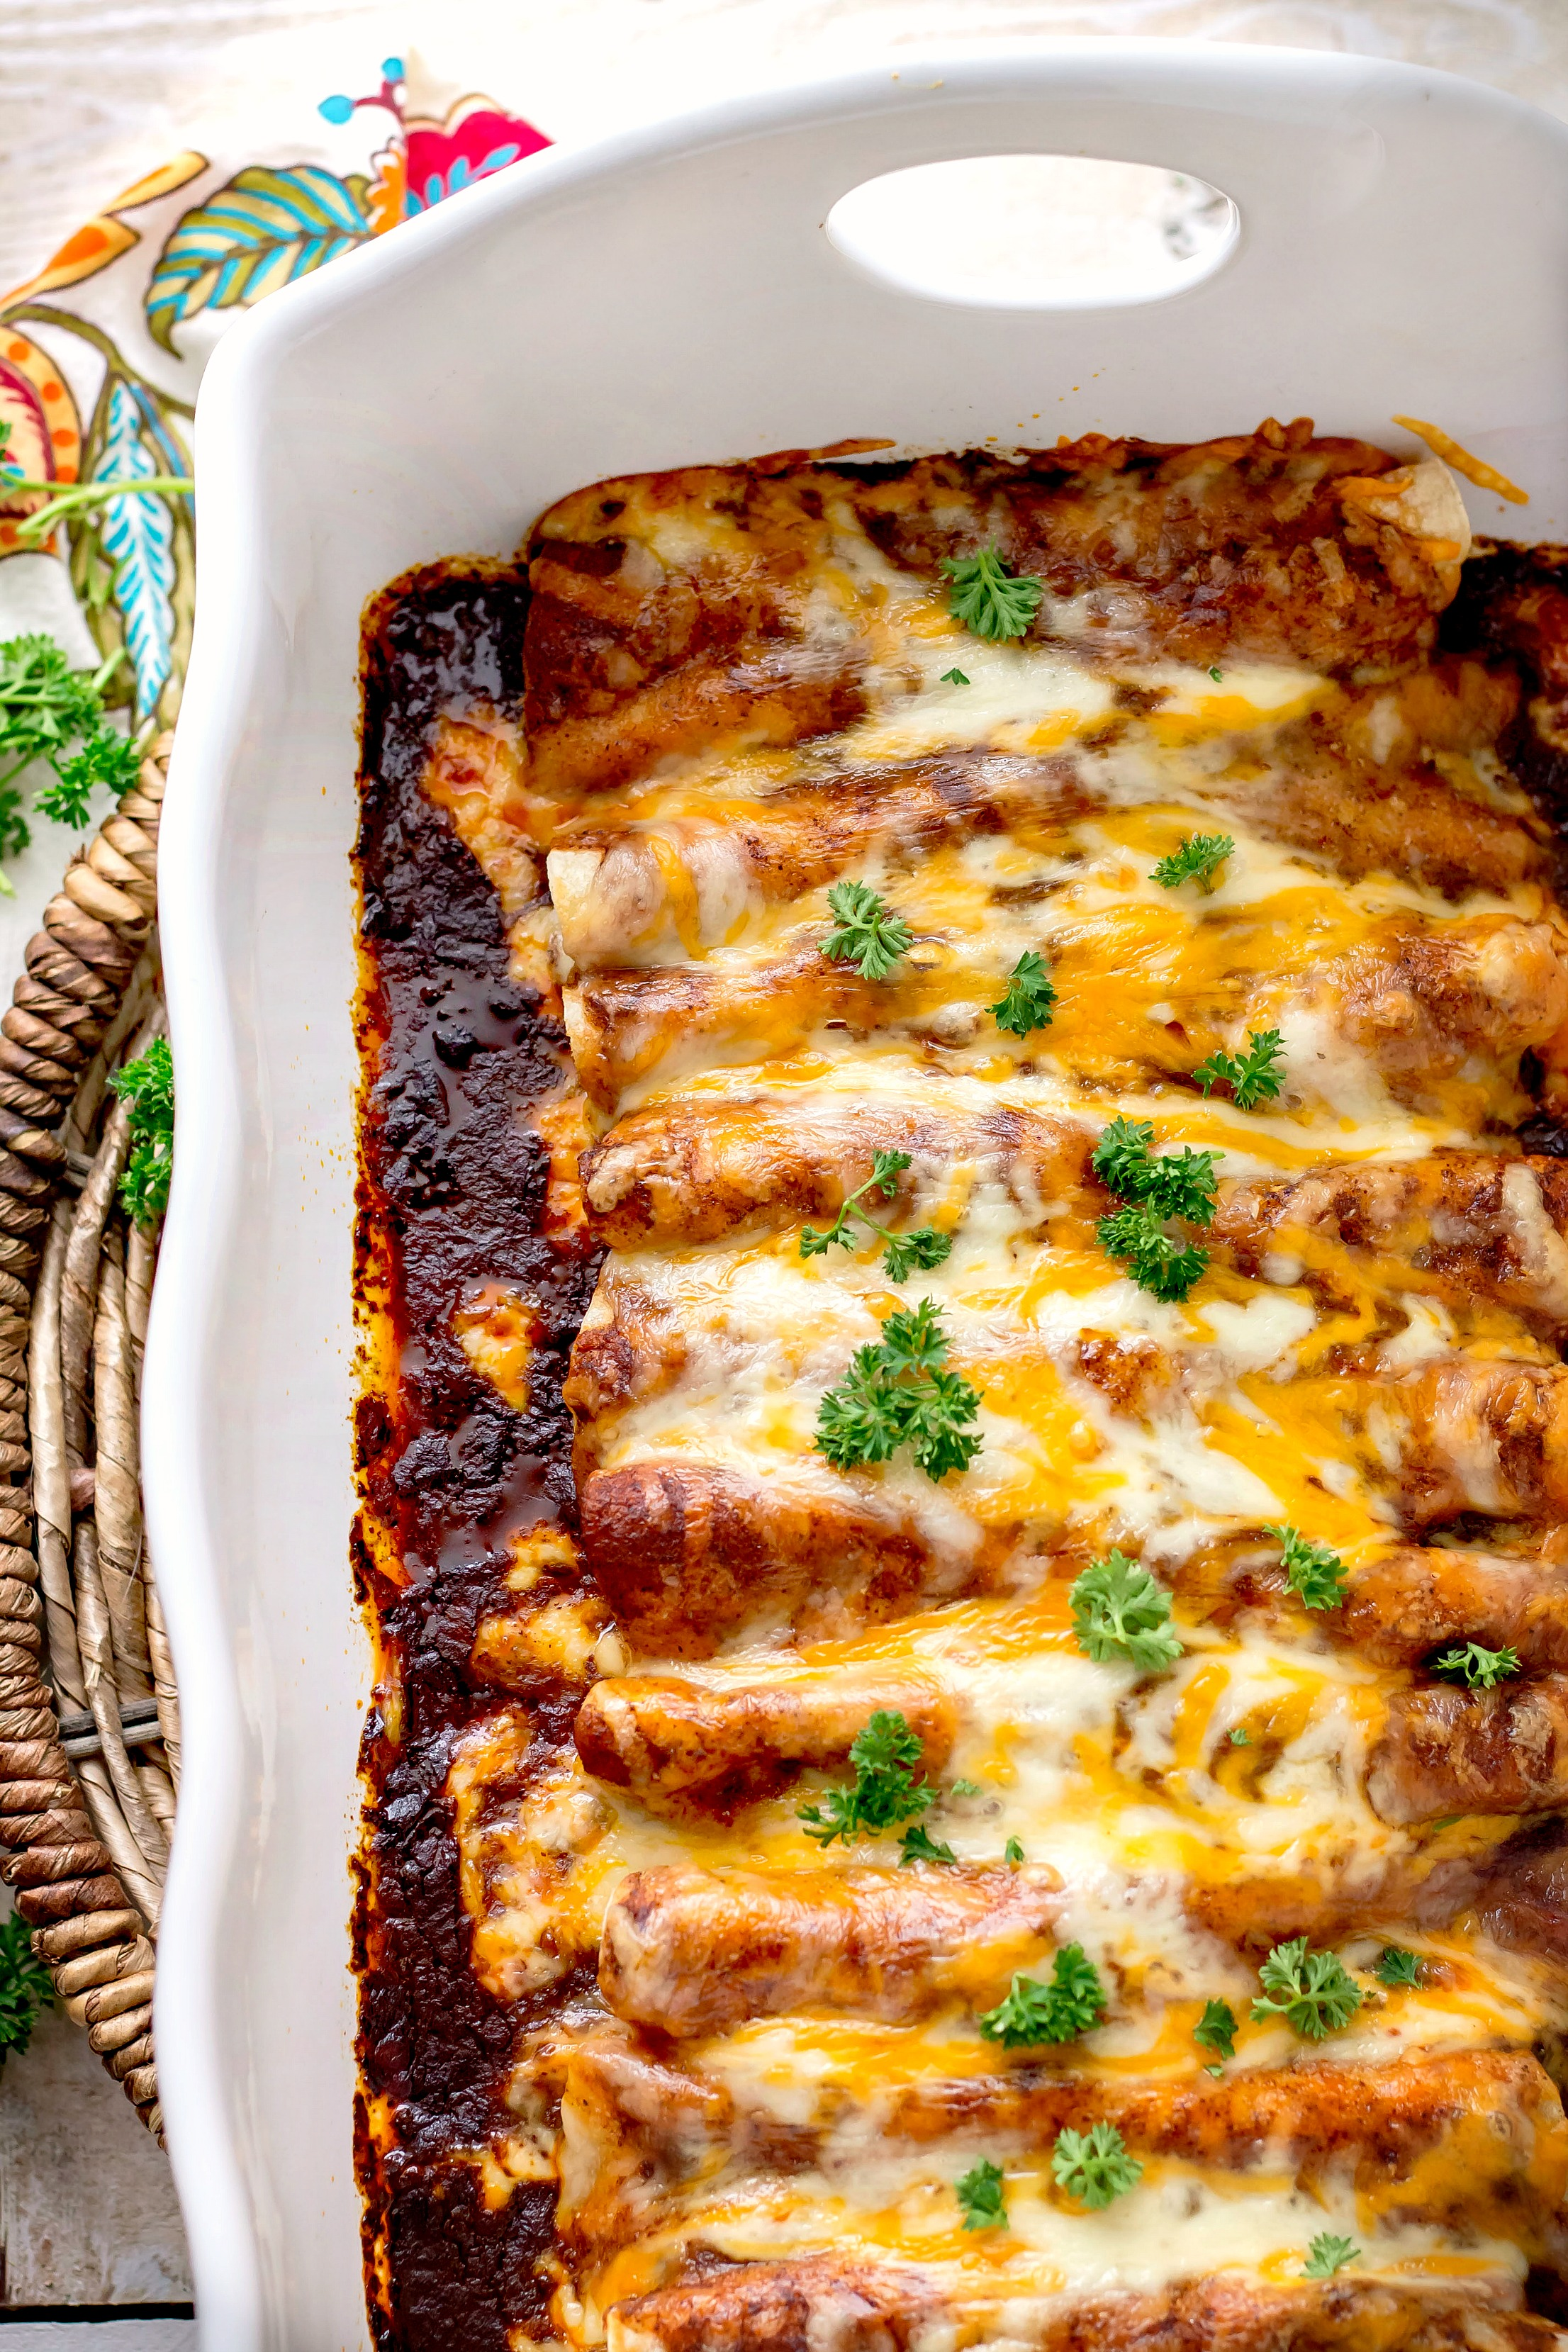 Chicken Enchiladas with Homemade Red Enchilada Sauce